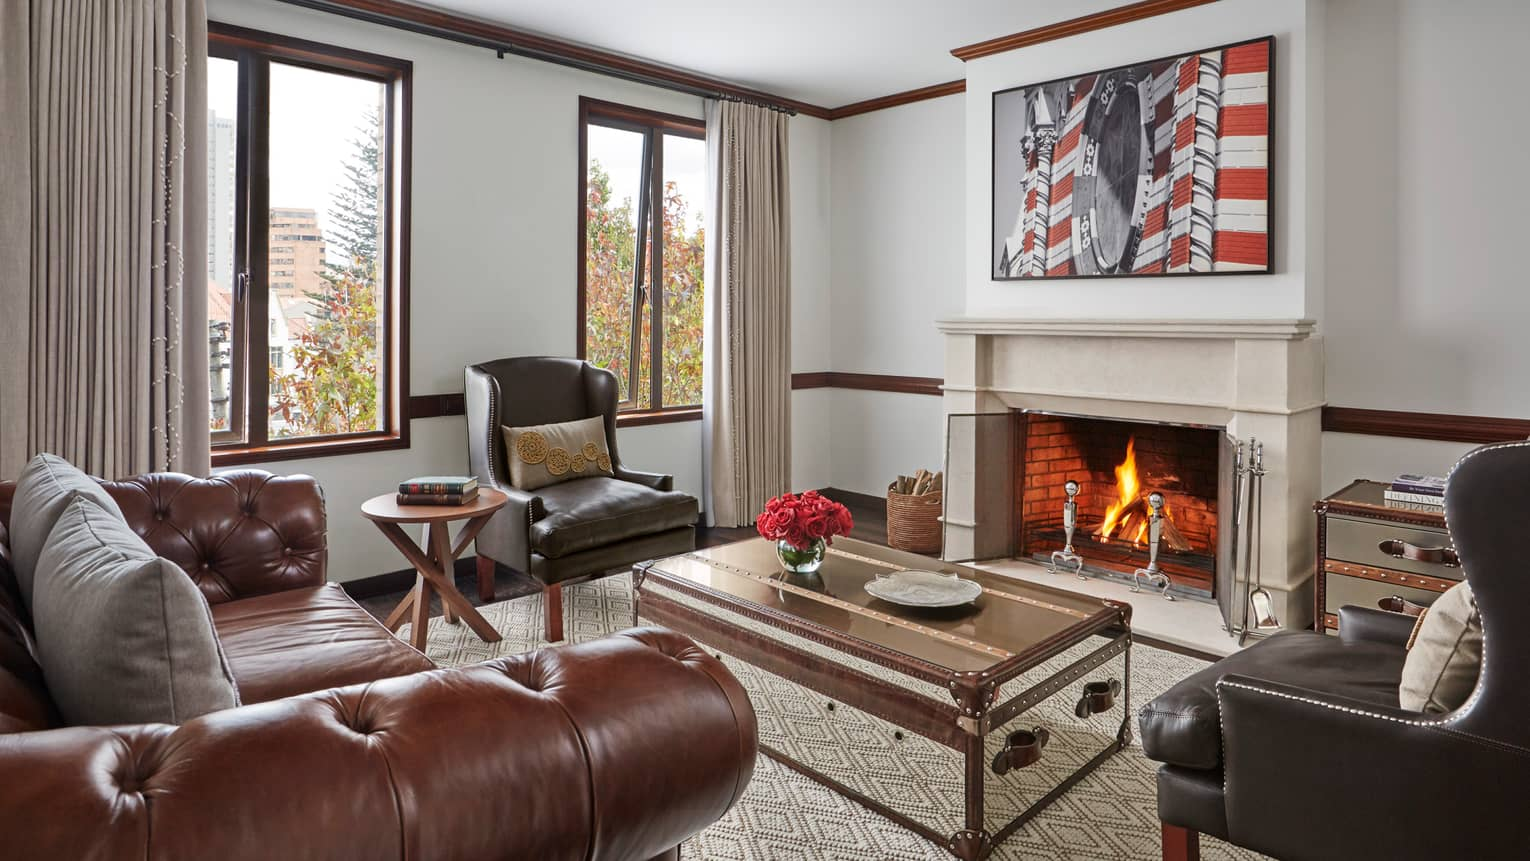 Hotel living room with brown leather sofa and armchairs trunk-style coffee table in front of roaring fireplace